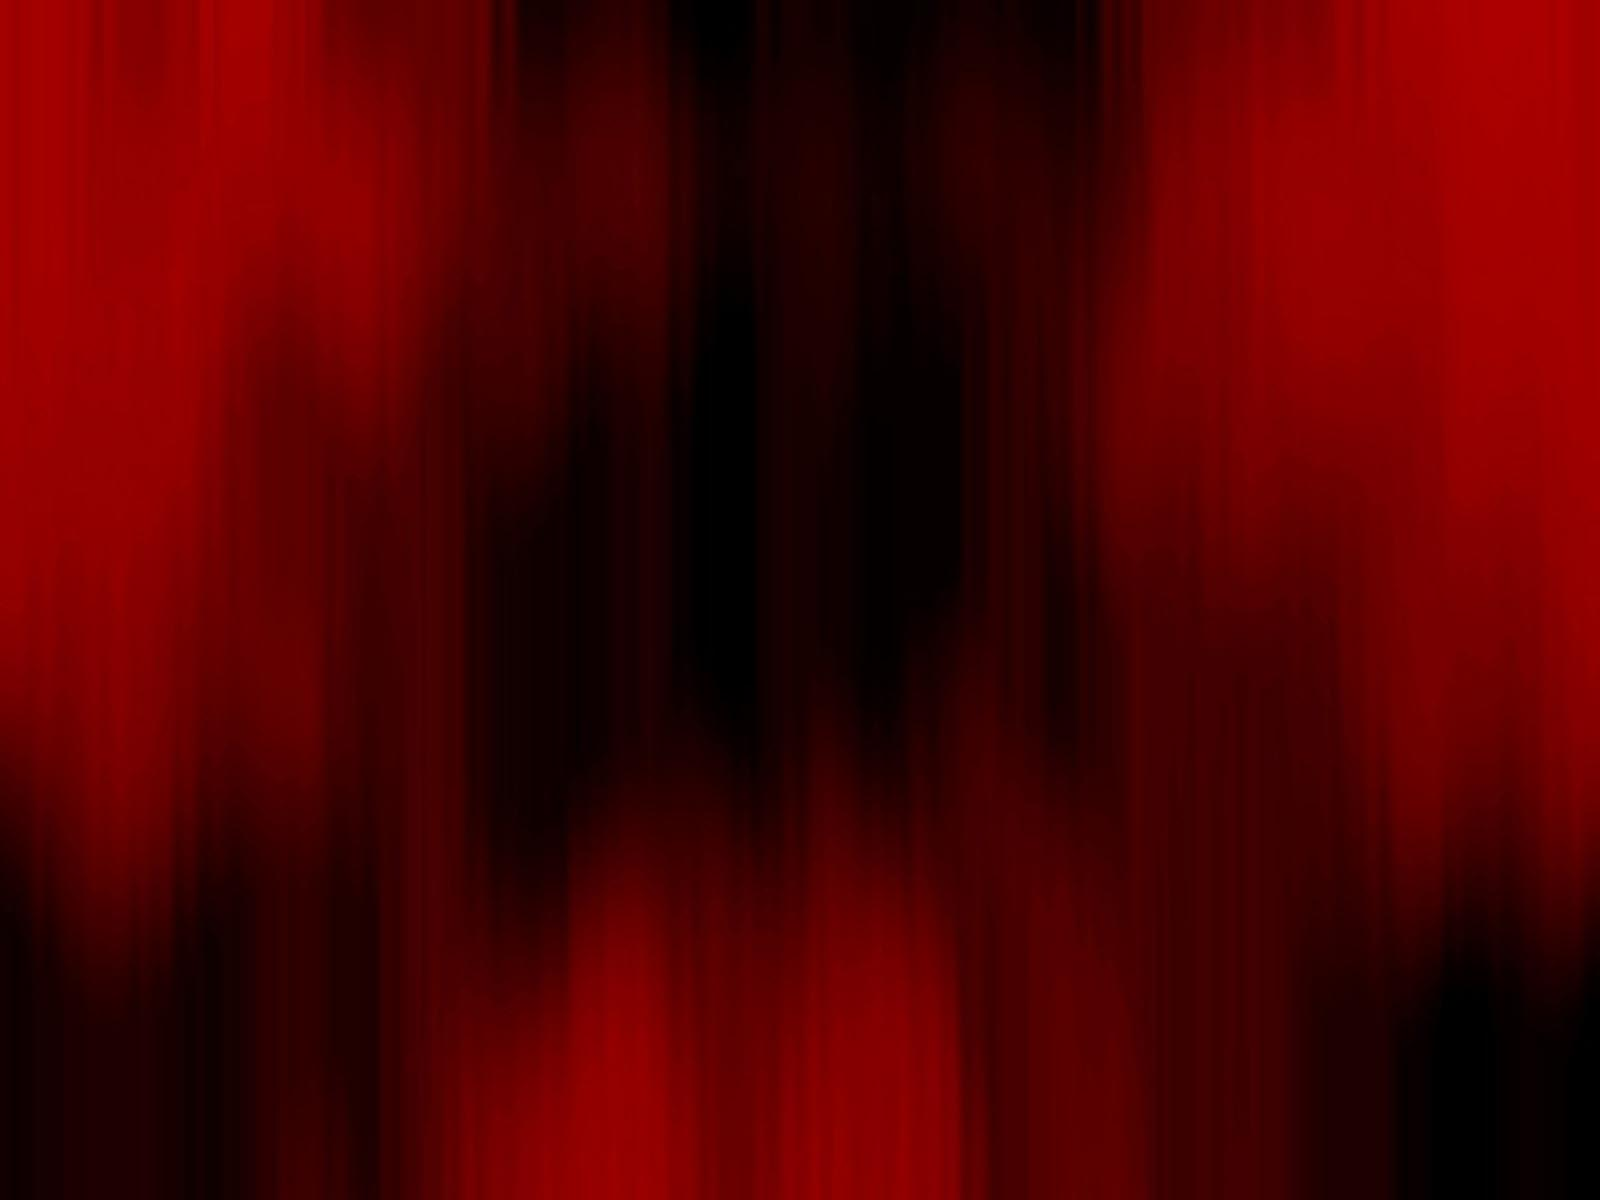 Red And Black Background 9 Free Hd Wallpaper